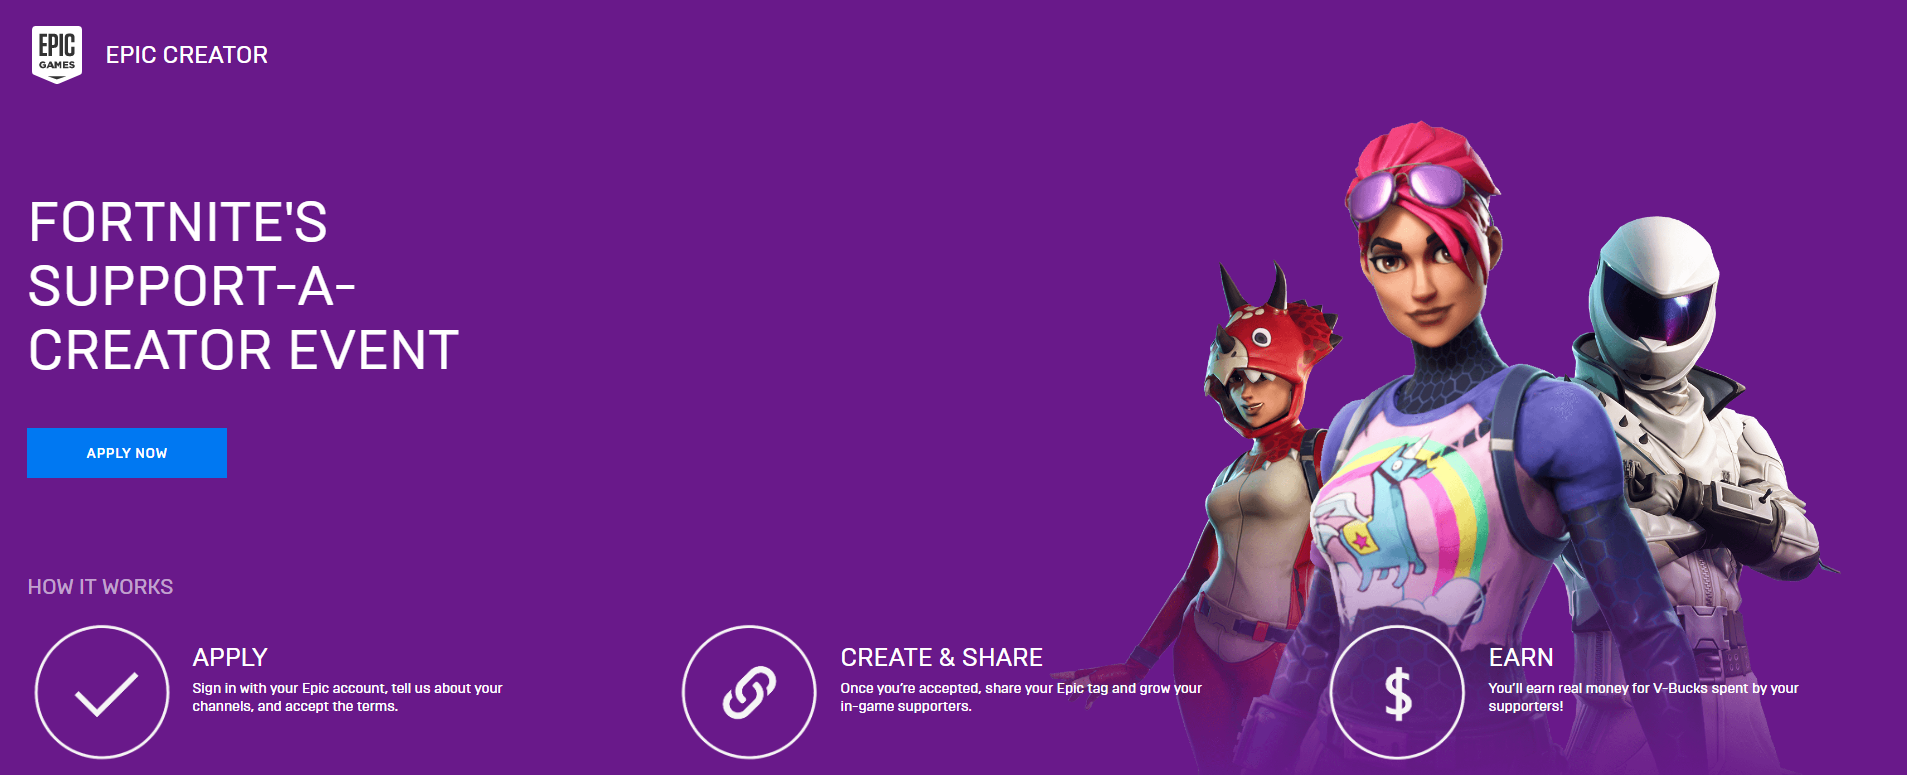 Fortnite Support a Creator Event